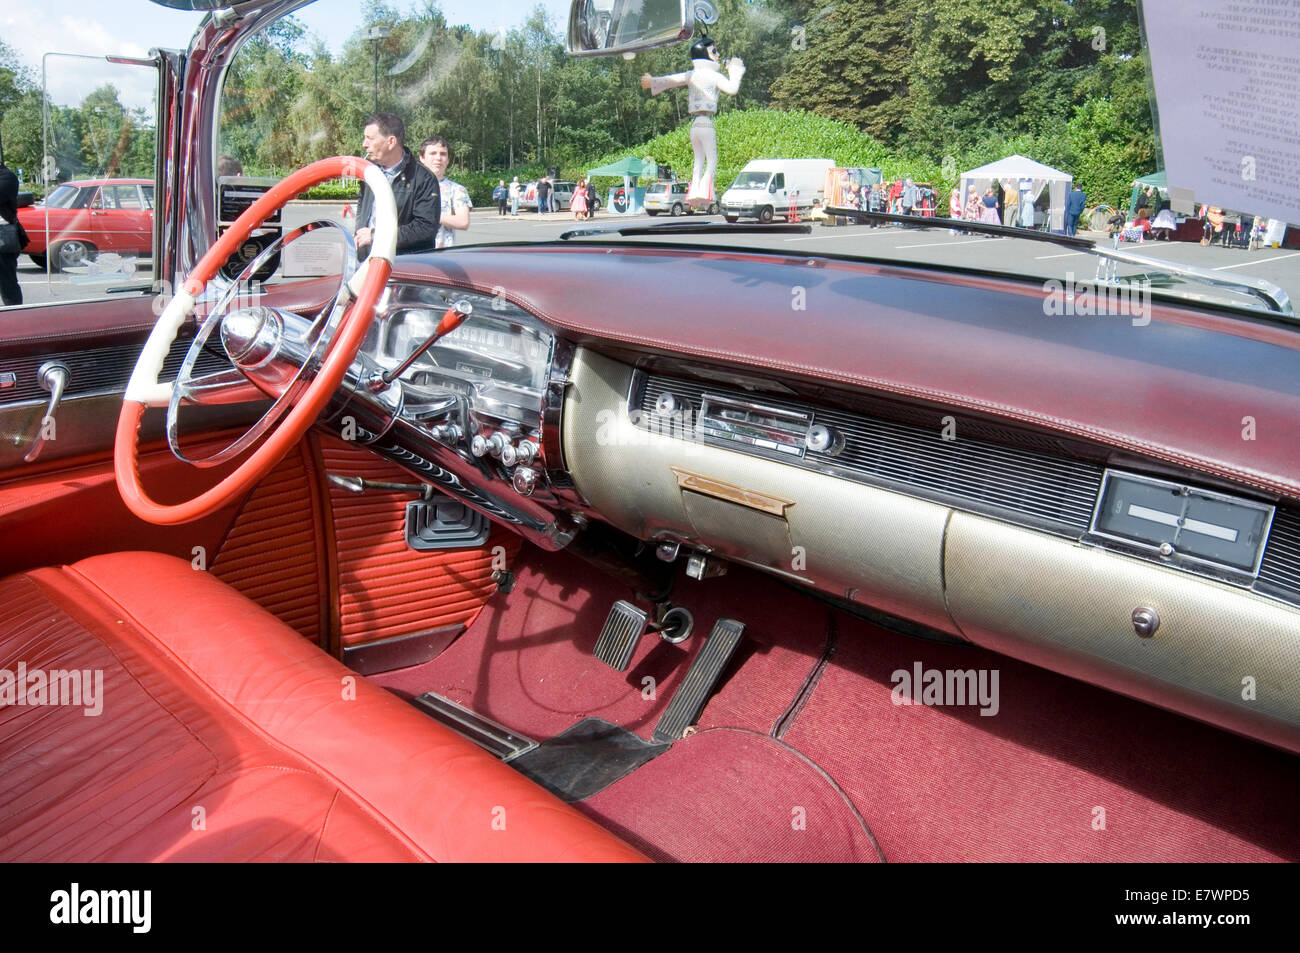 cadillac car cars interior softtop soft top tops convertible inside convertibles fifties 1954 classic american big - Stock Image